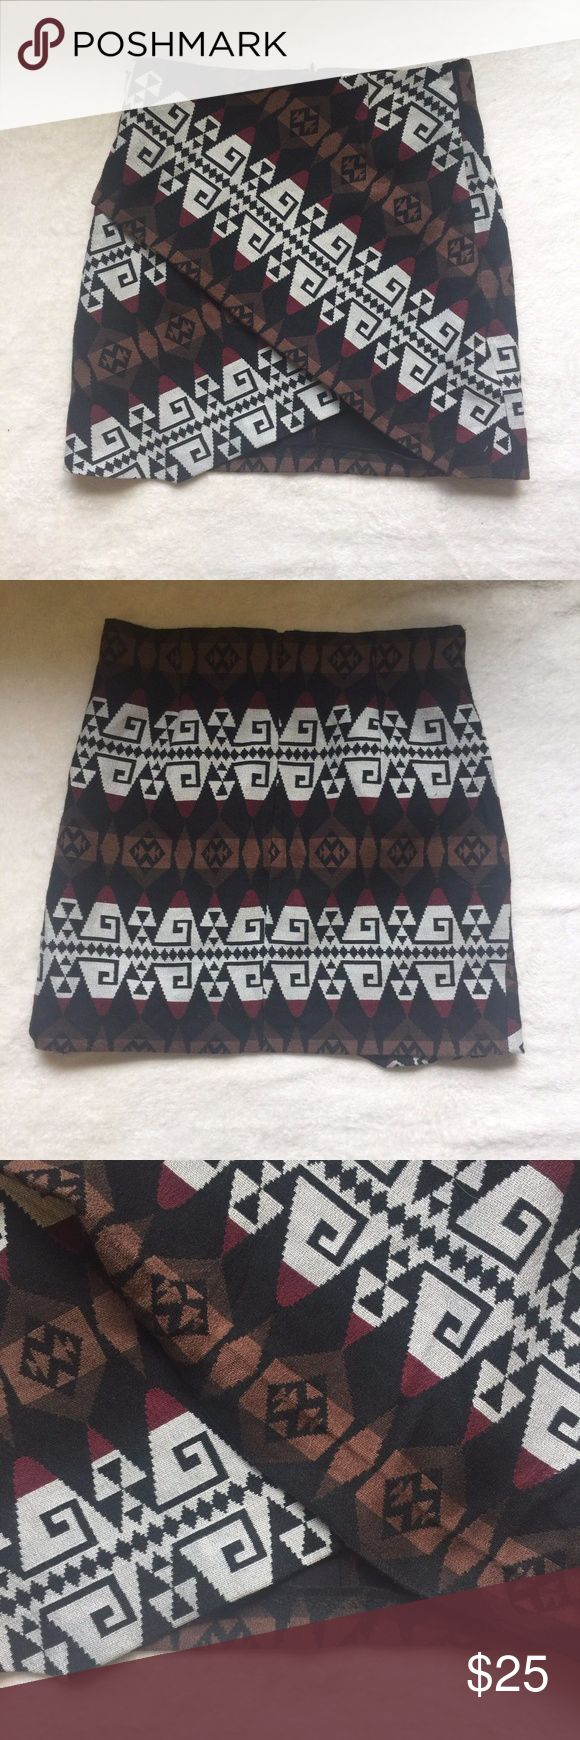 "Zara Aztec Print Skirt Size Small The material tag has been cut out so I am unsure of the material. Skirt has a wrap like feature but is not a wrap skirt please see pictures for better idea. Also I'm not sure if it how the skirt is made but the hem is not attached please see pictures.  Measurements:  Waist: 28""  Inseam: 17"" Zara Skirts"